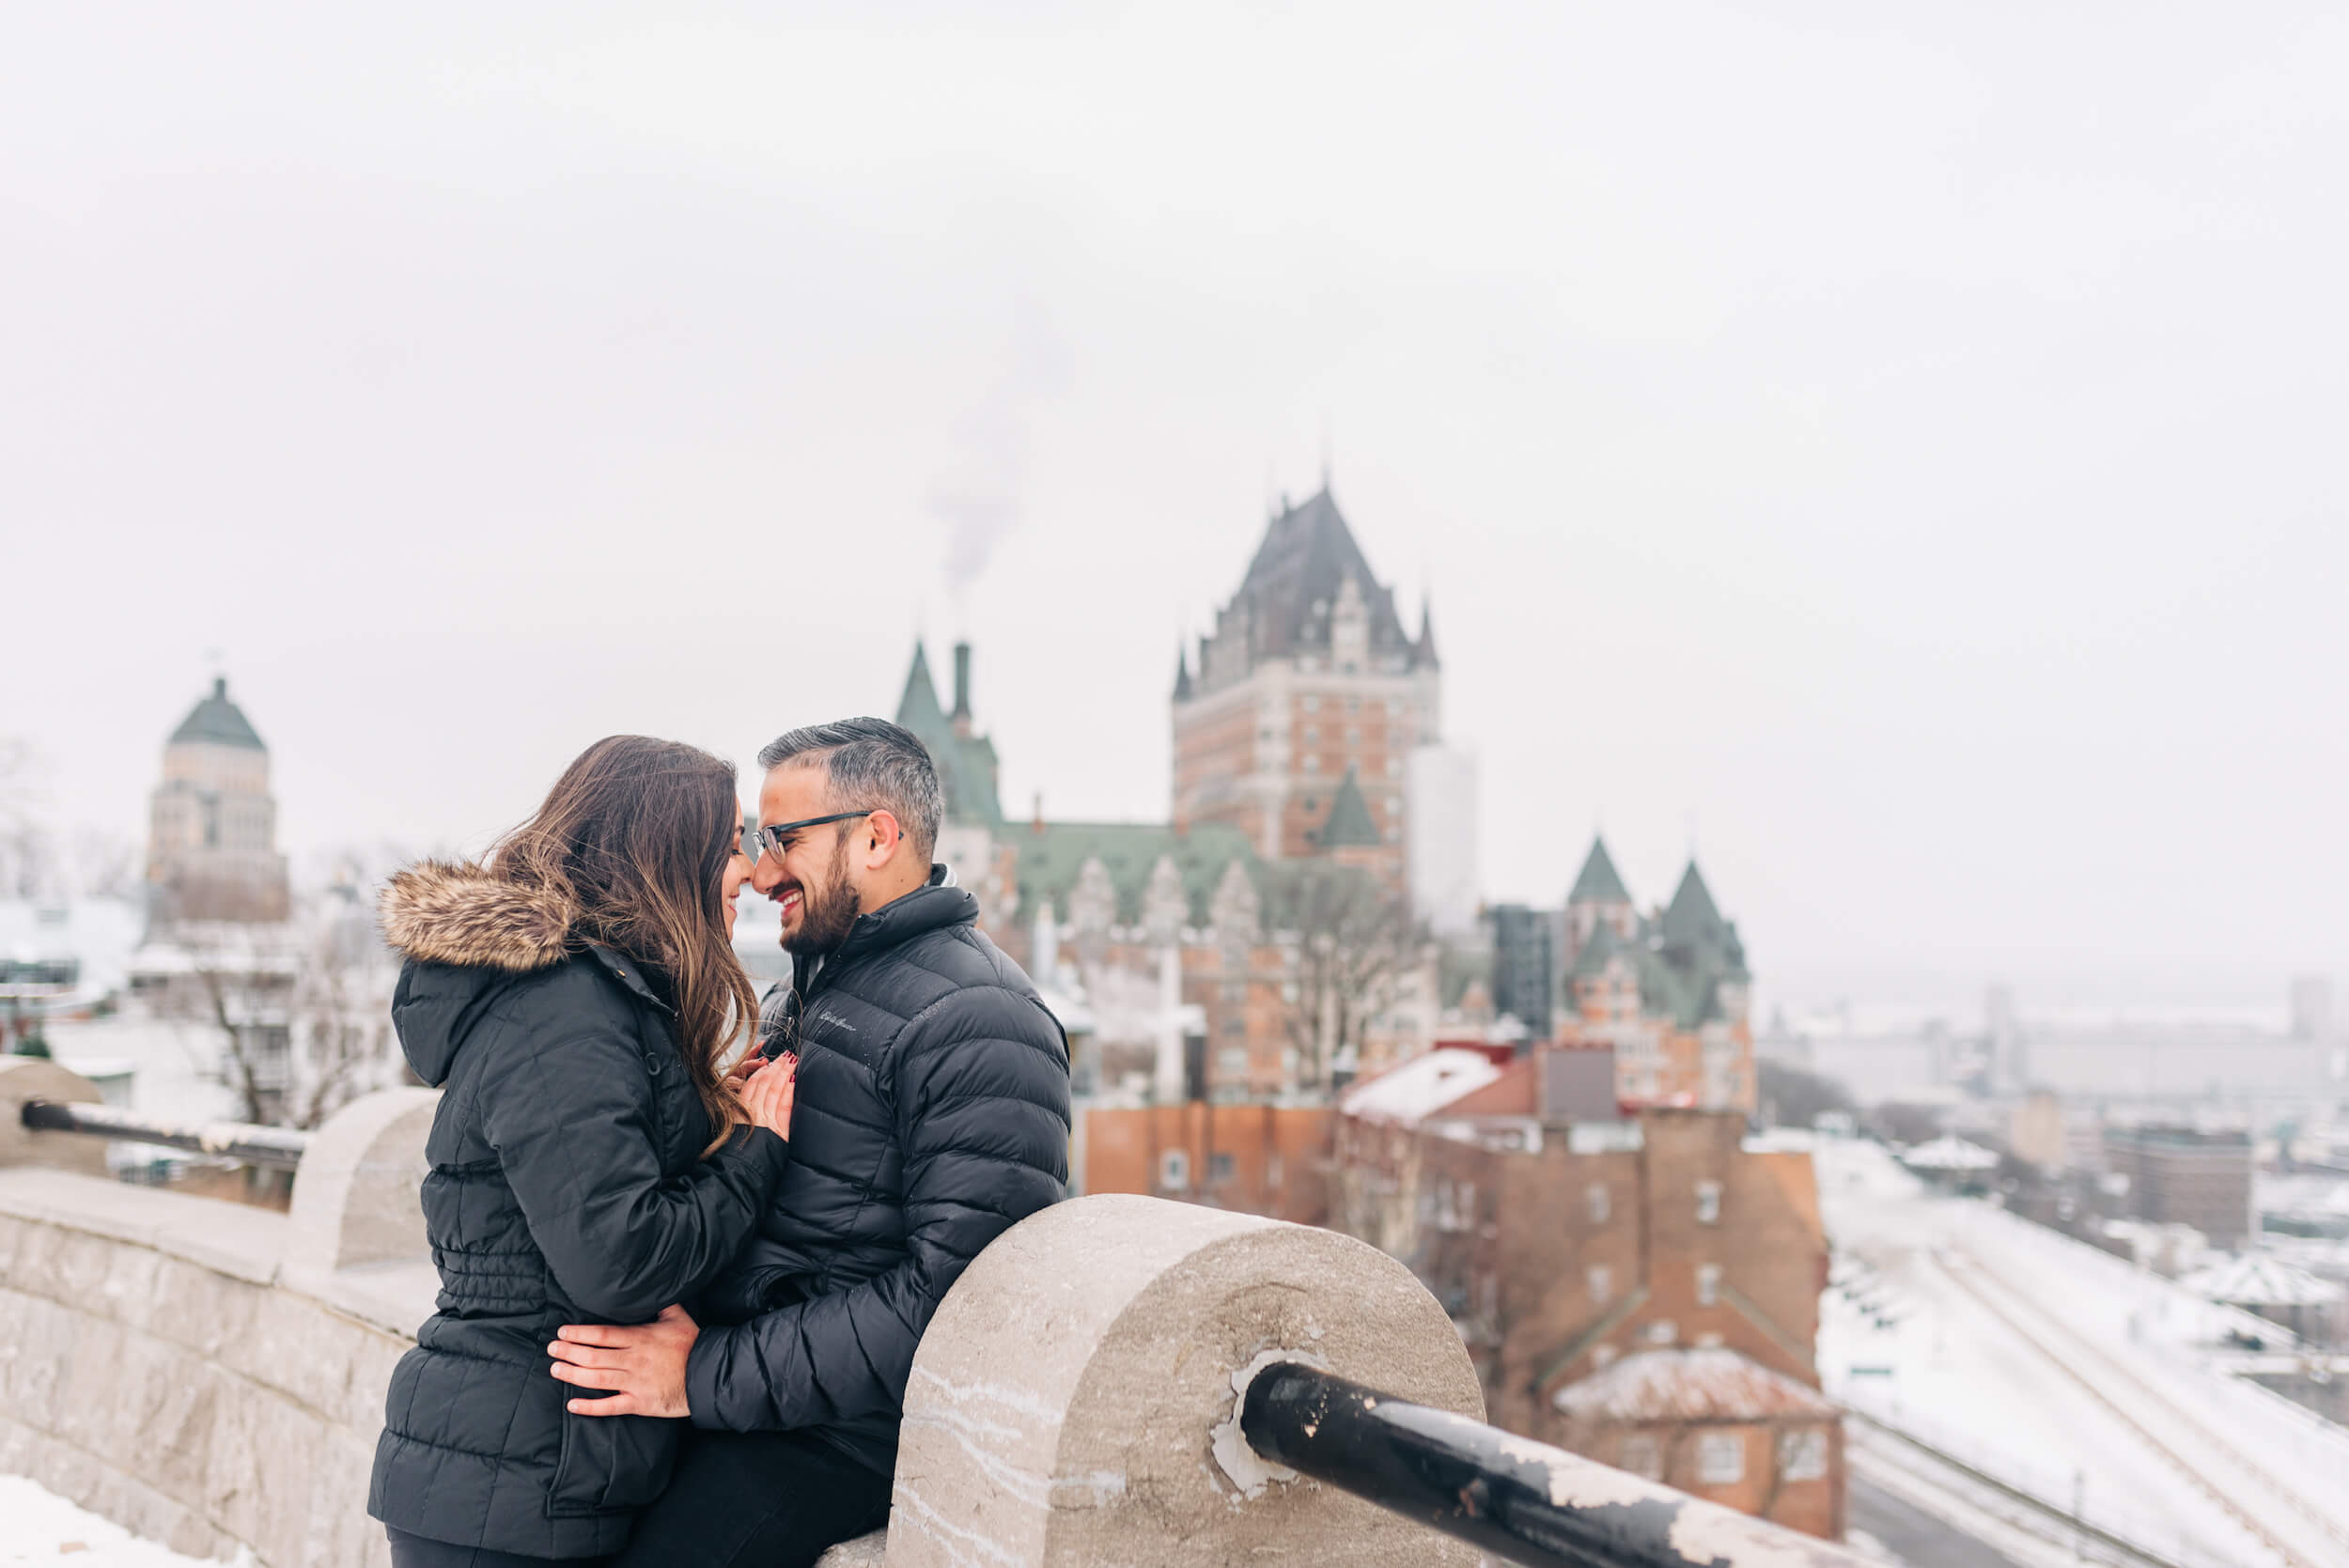 romantic couple photo shoot in quebec city captured by flytographer